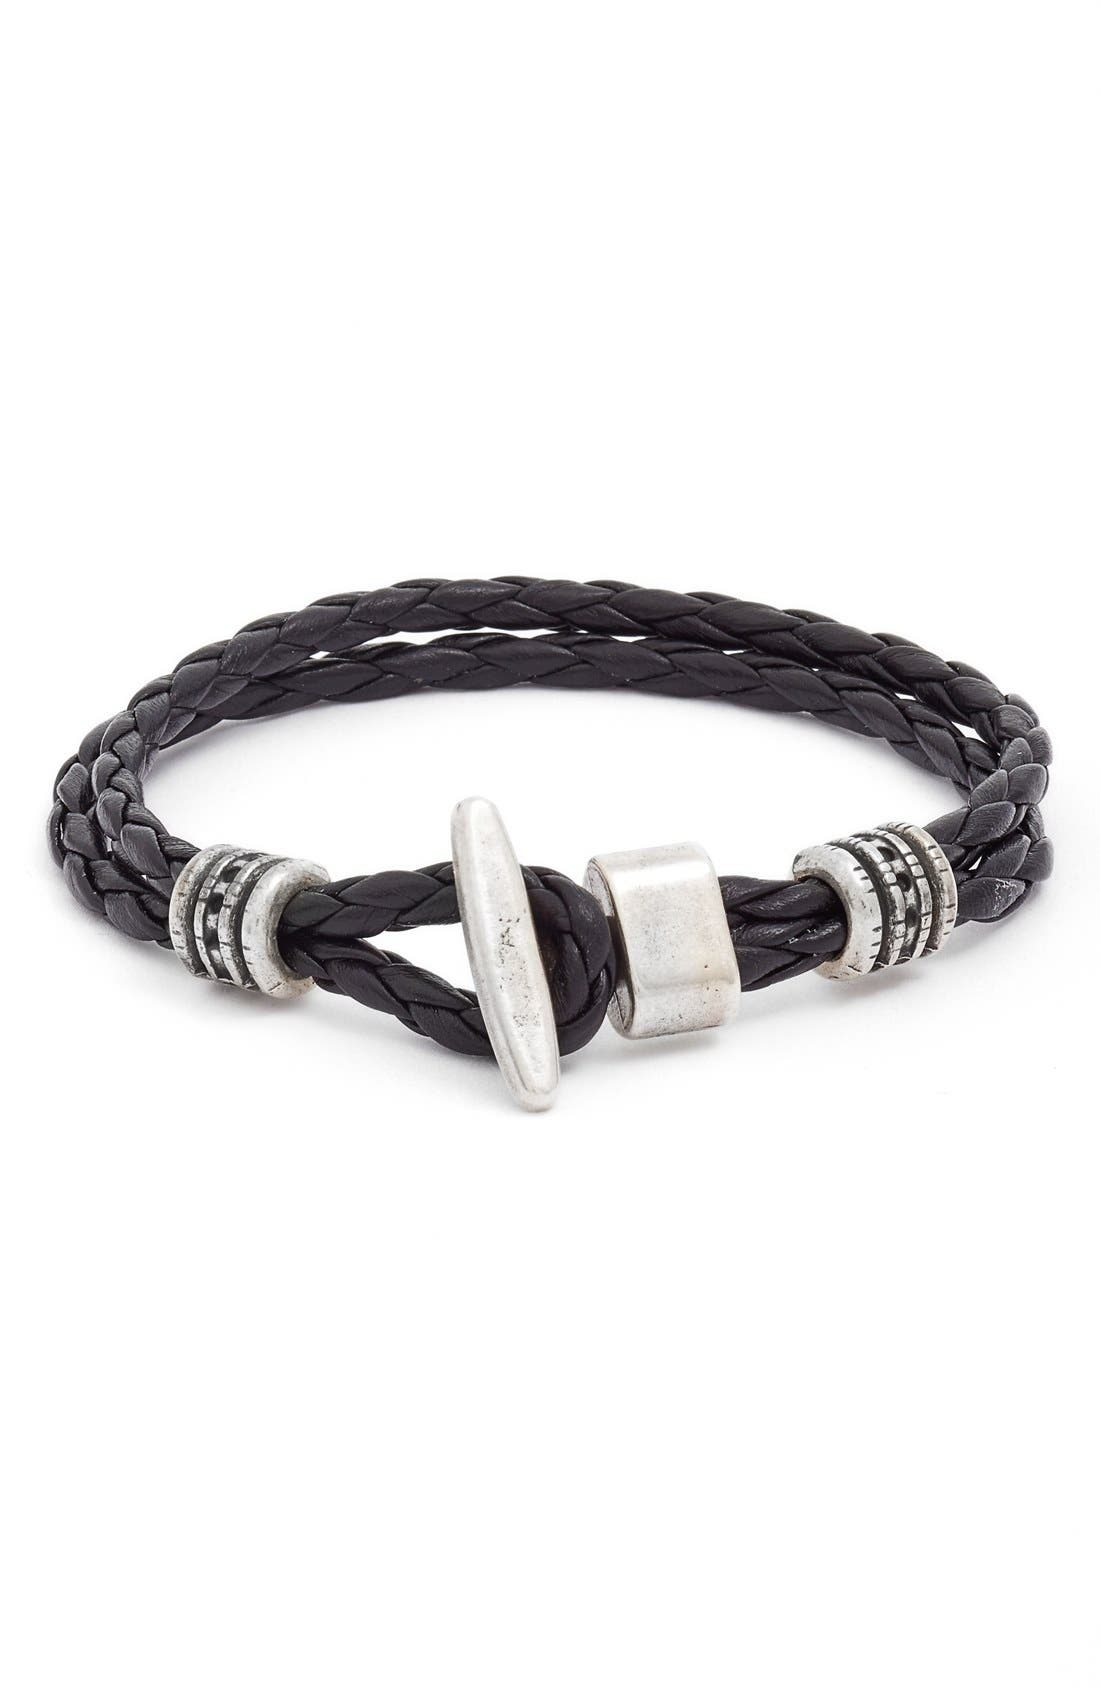 TORINO BELTS Braided Leather Bracelet